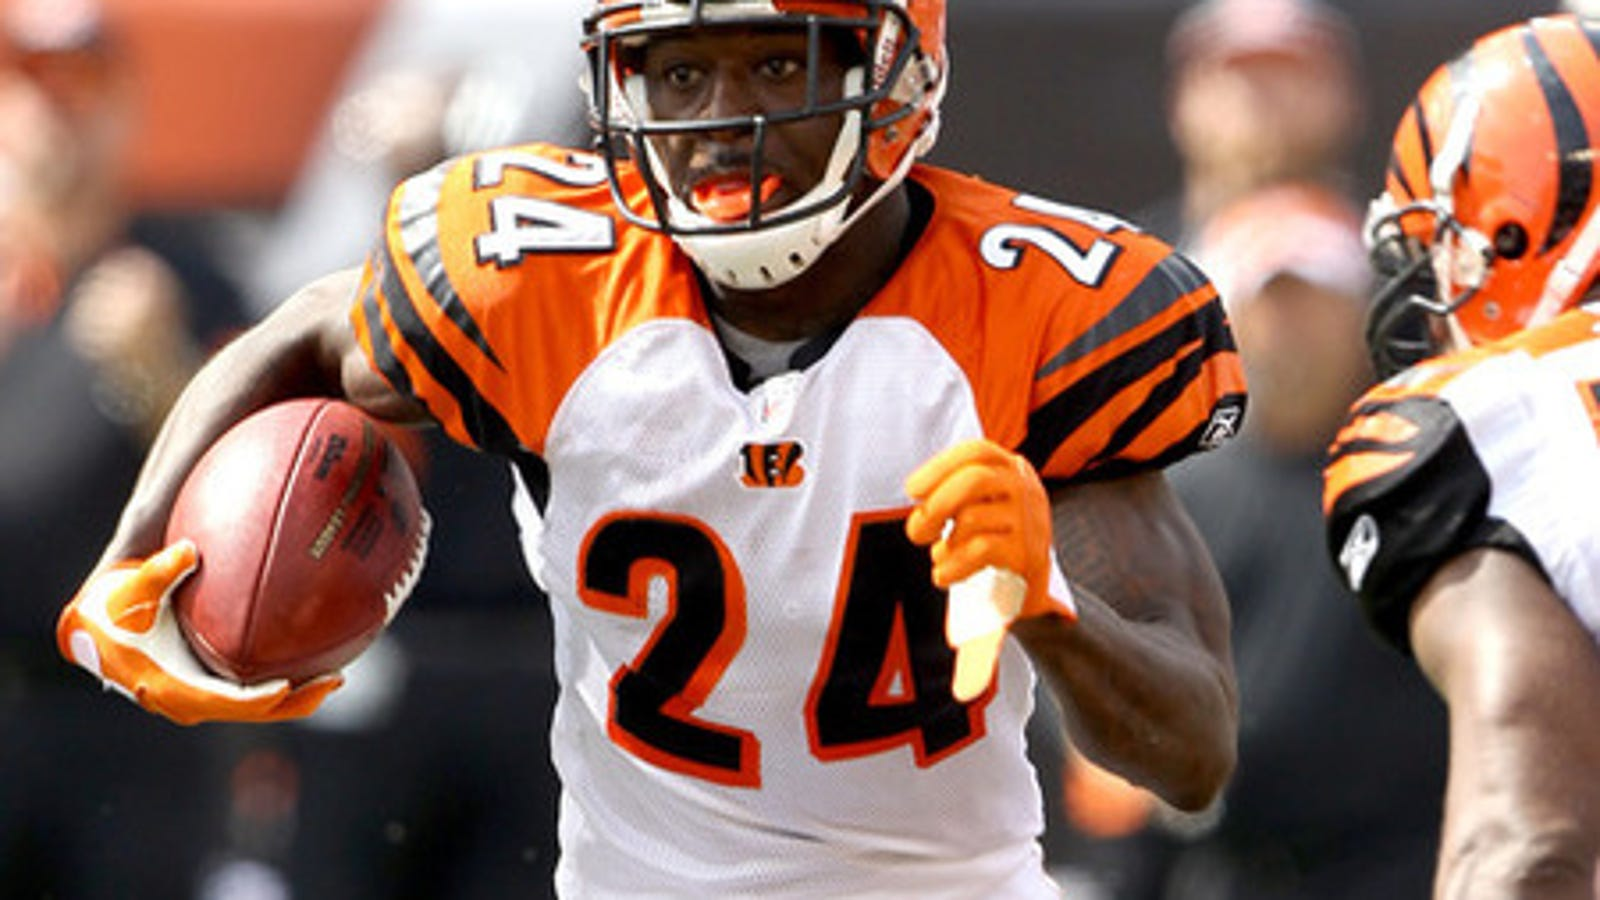 """Image result for Adam Jones: """"If Somebody Asked Me For My Jersey and Ring, I'd Have Probably Gave It To Them, Too."""""""""""